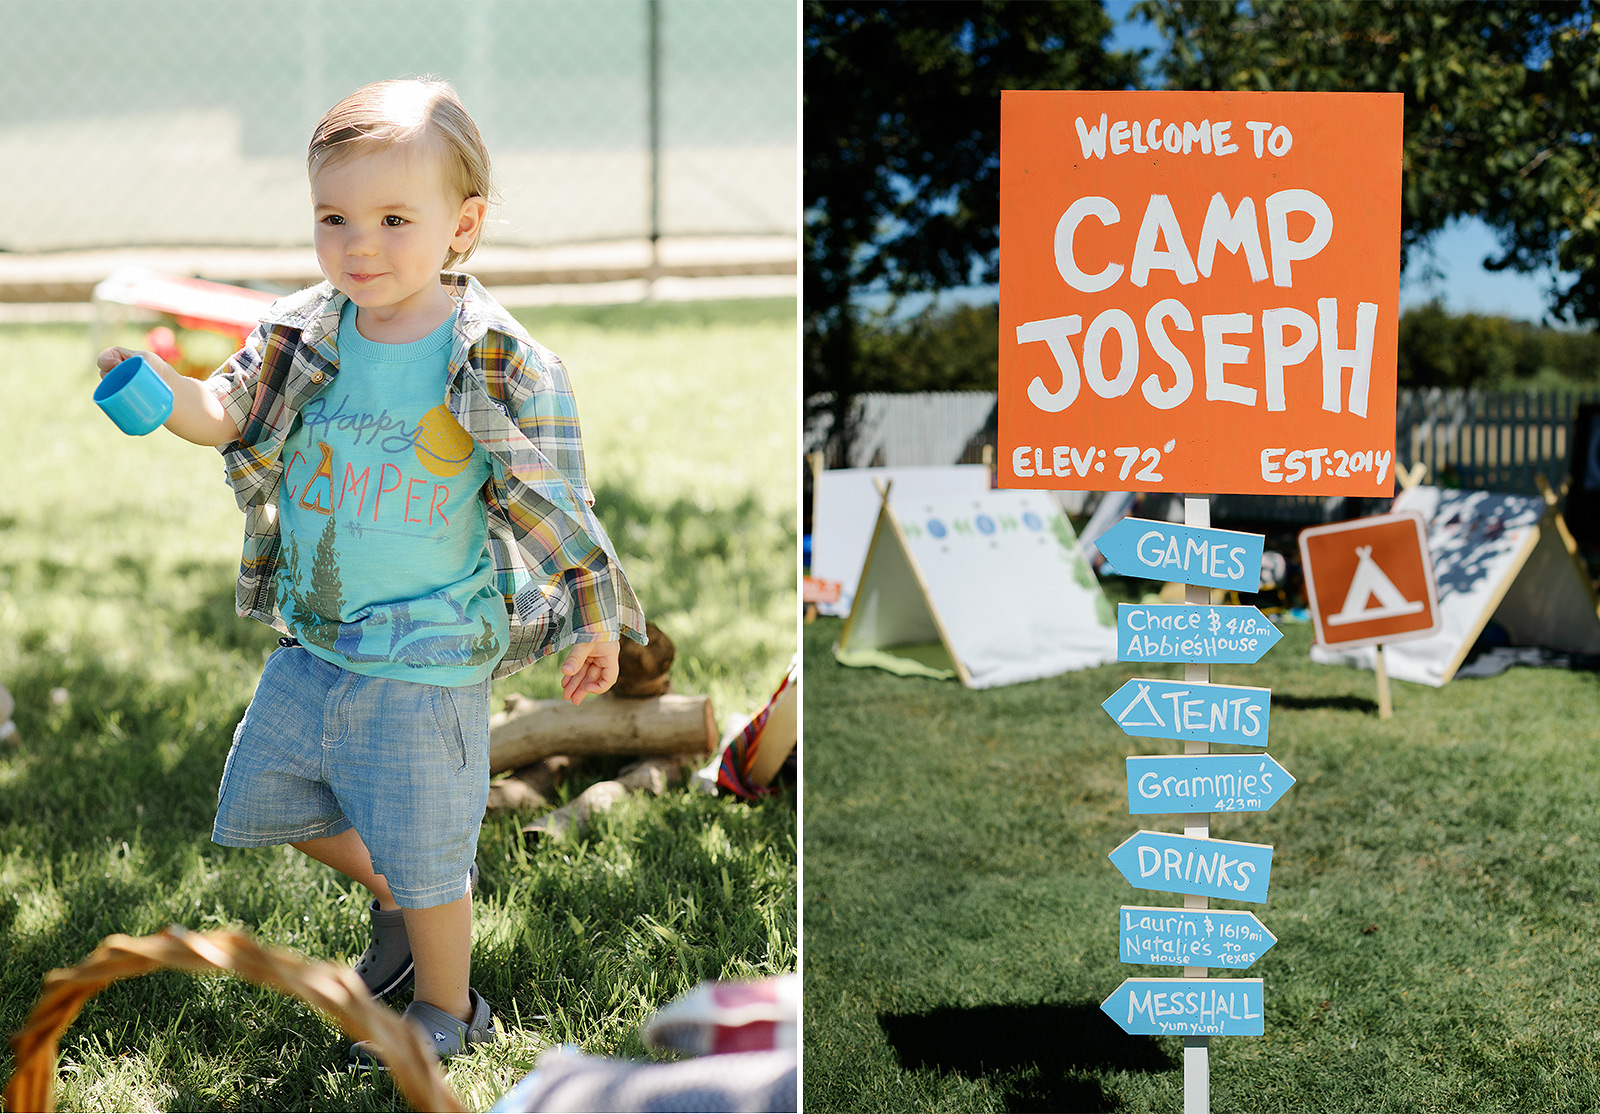 Welcome to Camp Joseph